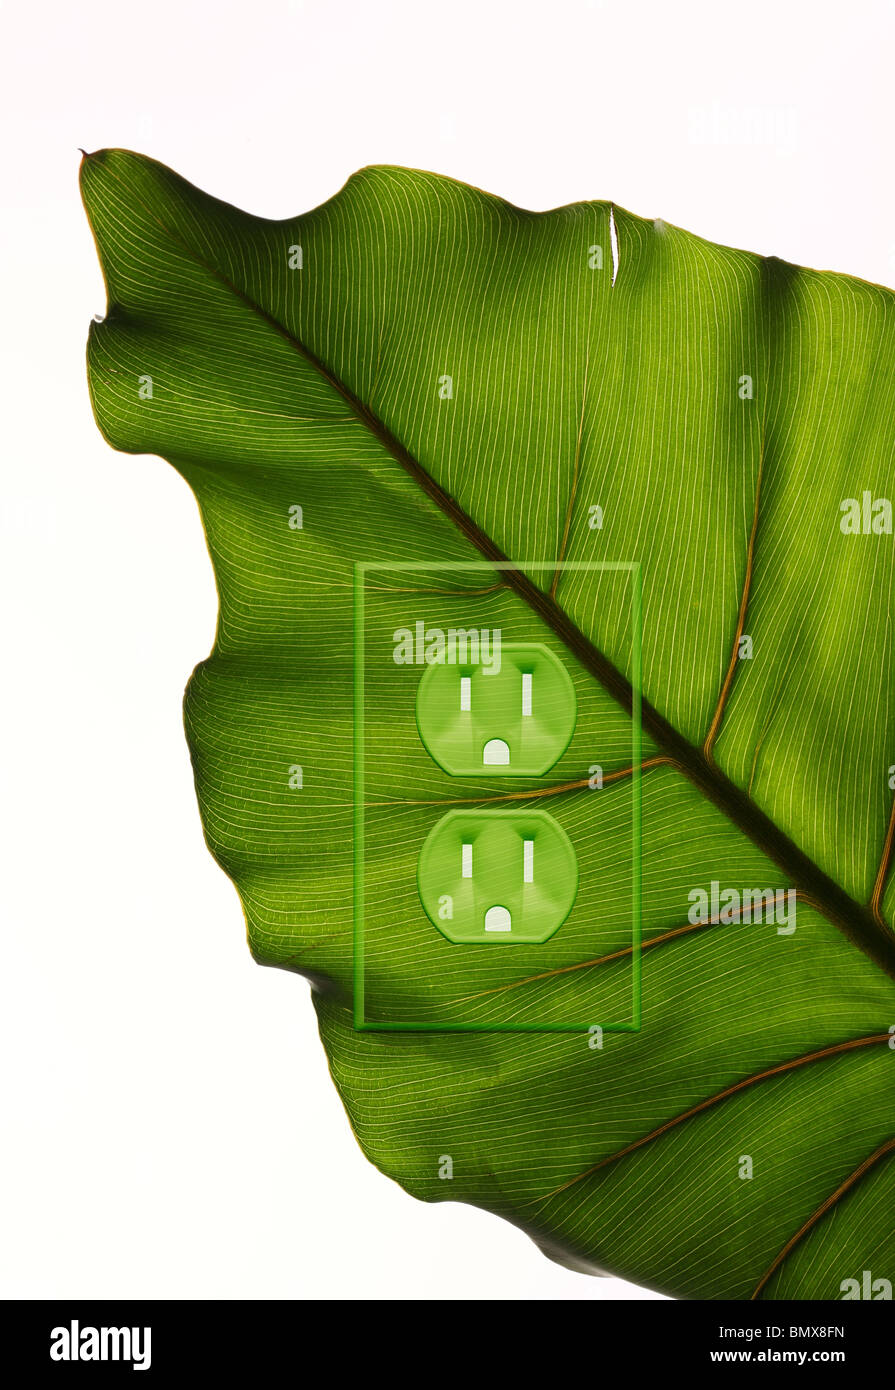 A green plant leaf with an electrical power outlet - Stock Image